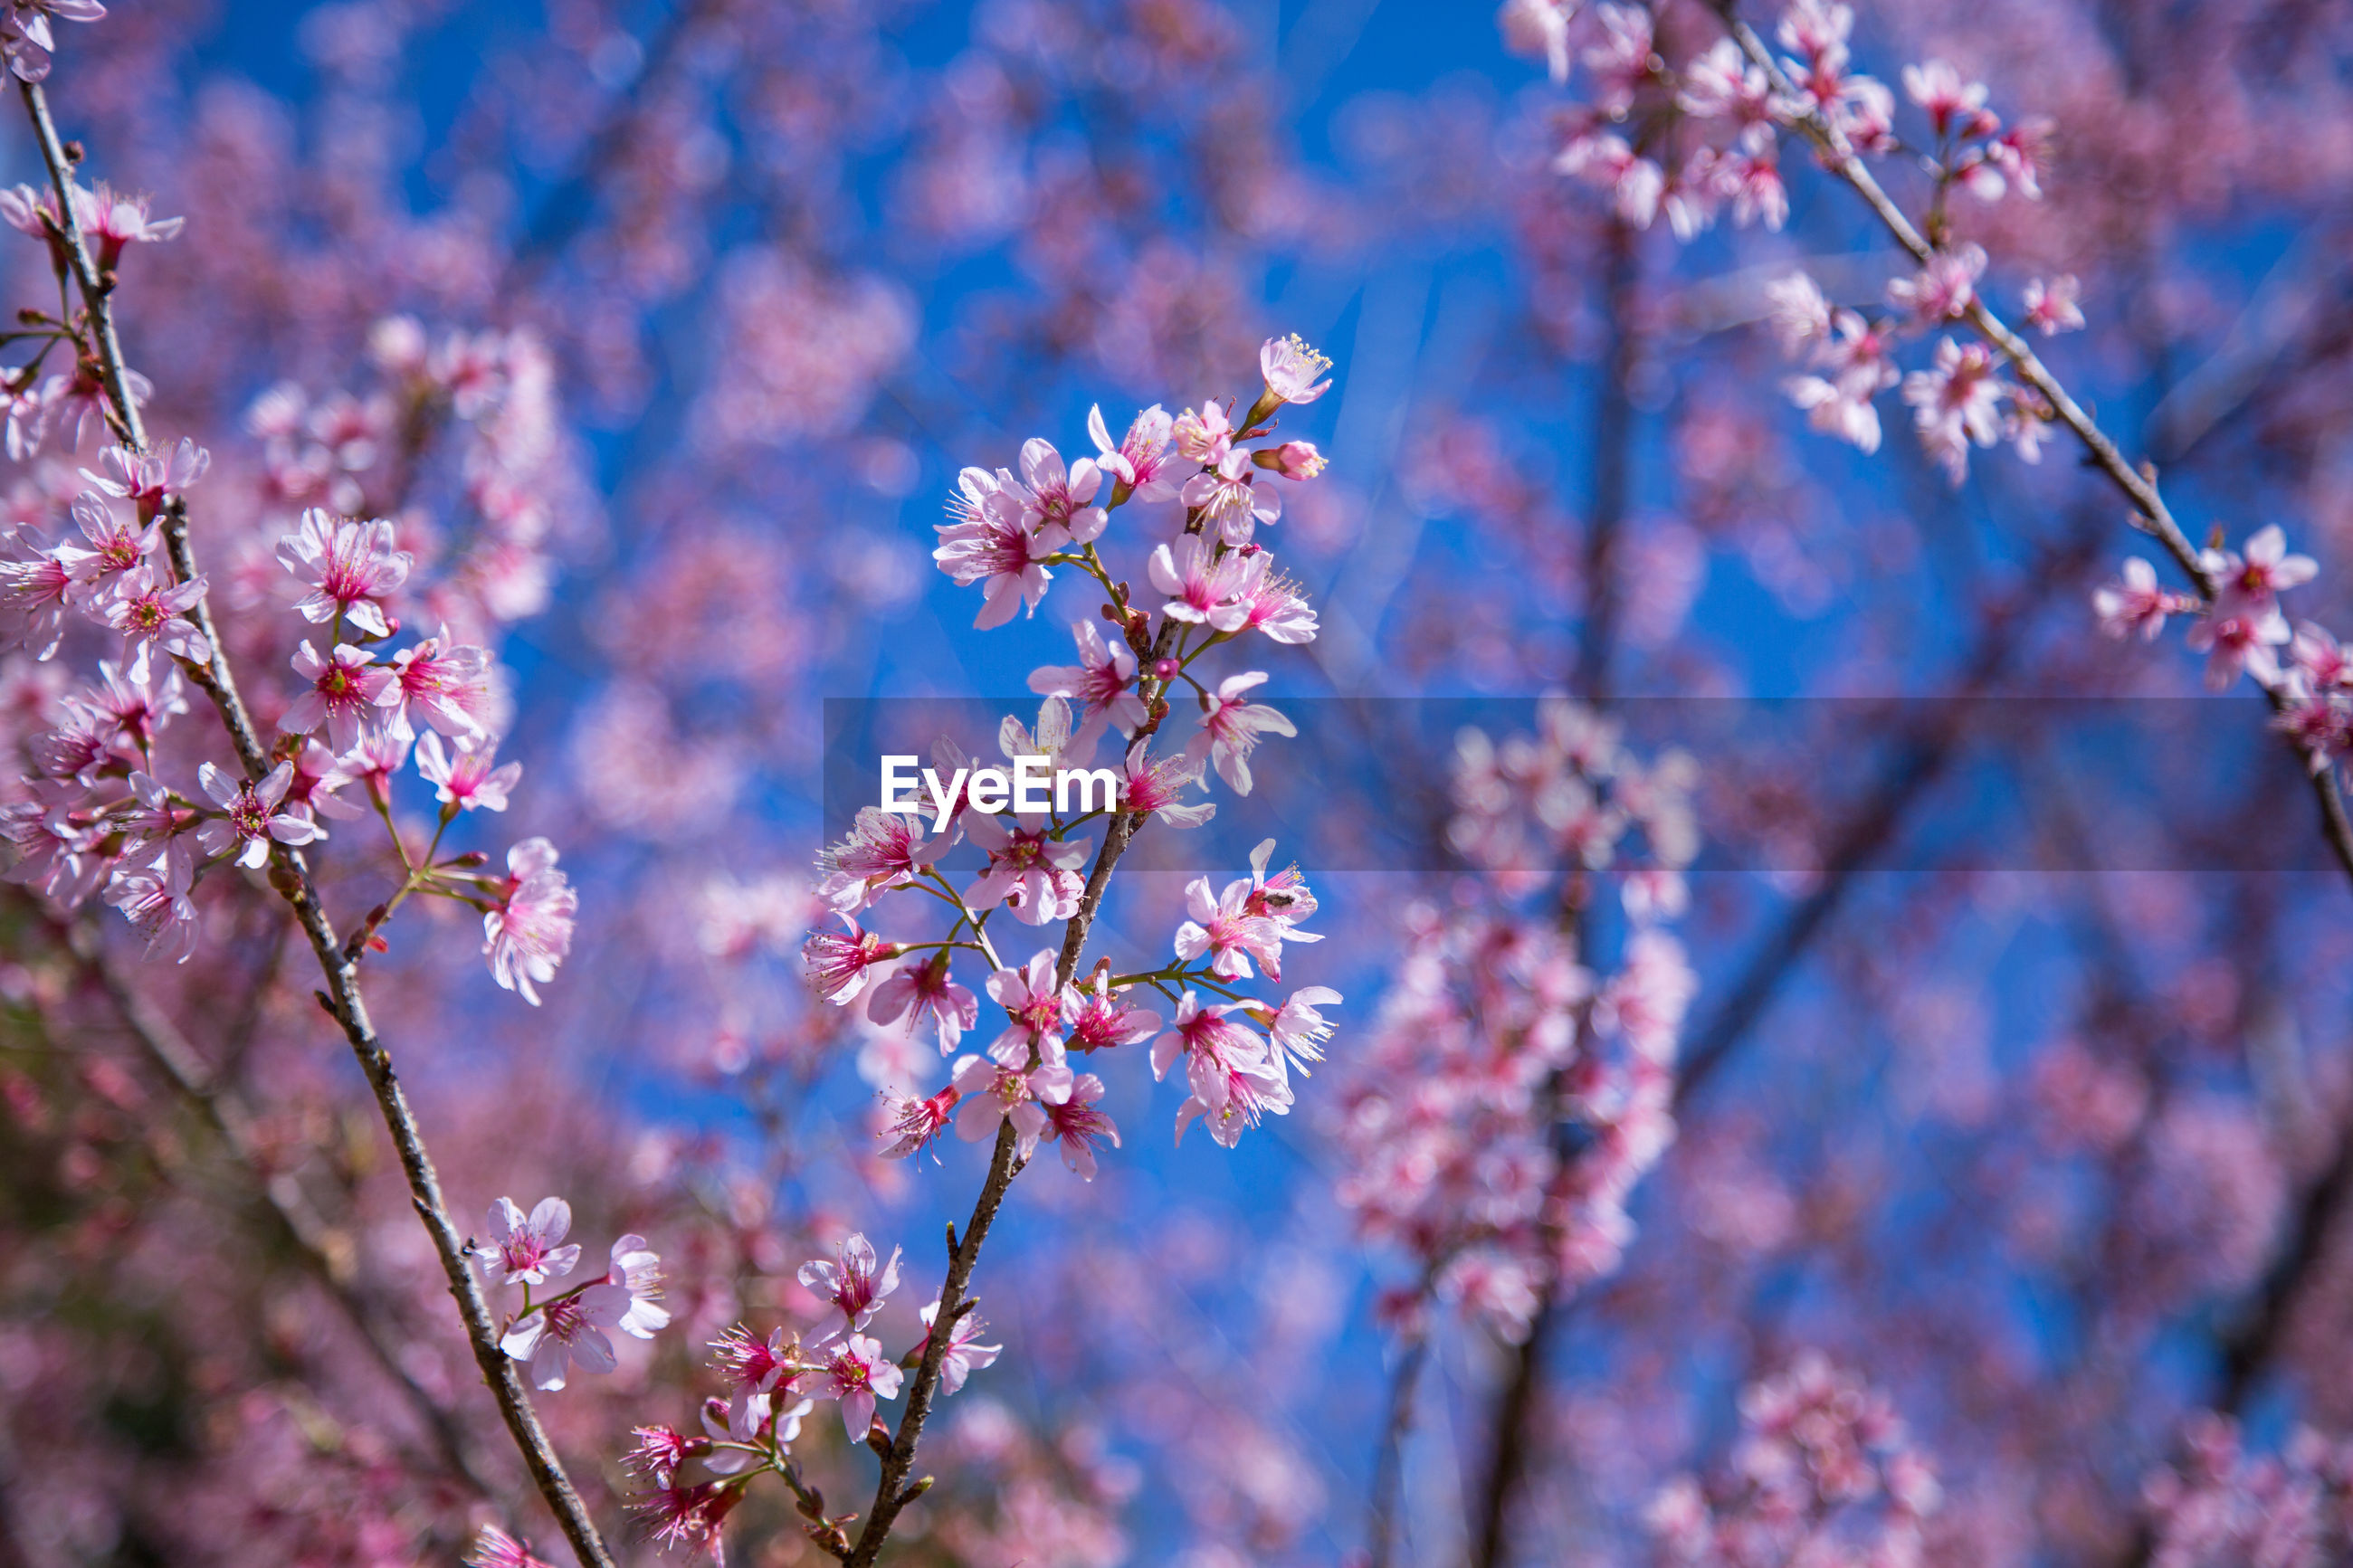 CLOSE-UP OF PINK FLOWERS ON TREE IN SPRING